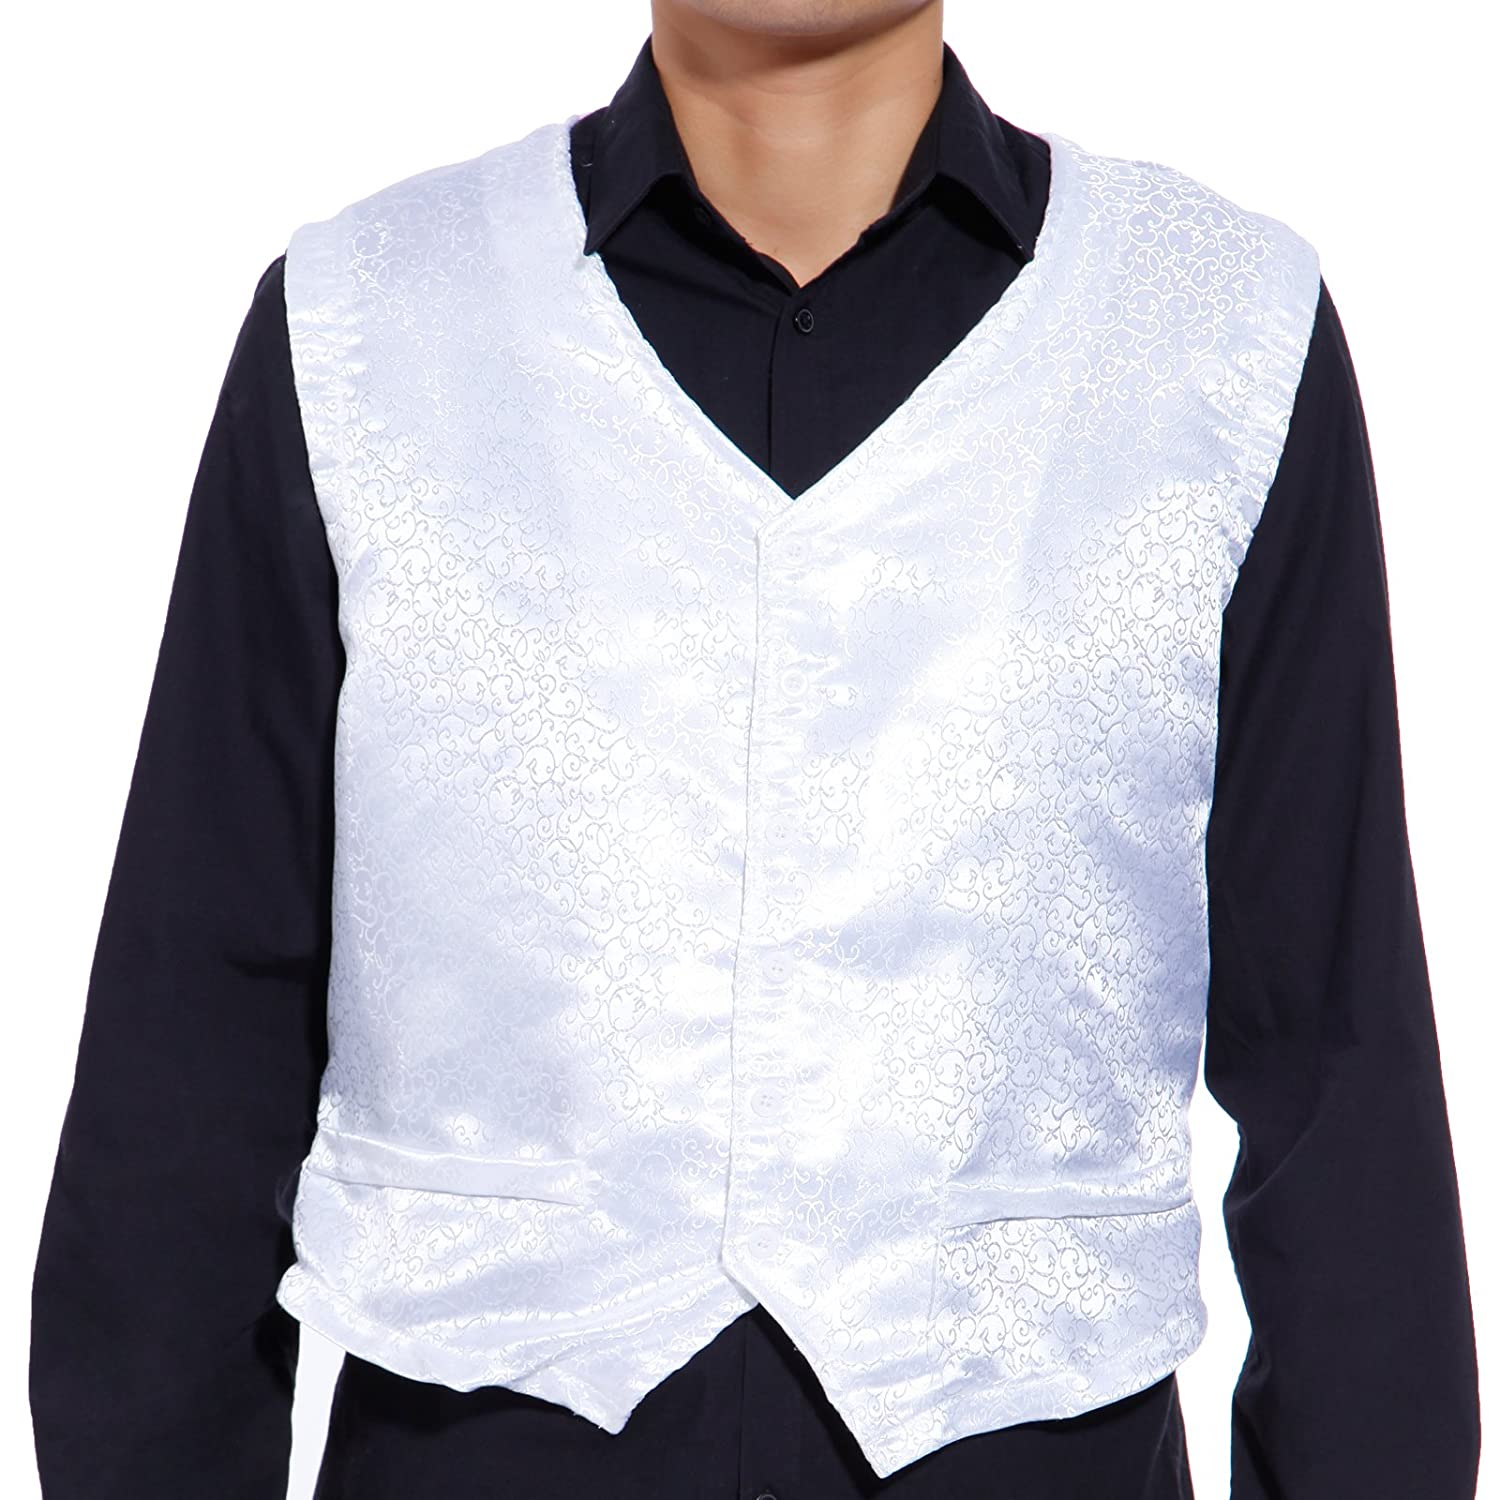 SurePromise Quality Swirl Mens Formal Vest Slim Causal Fit Wedding Tuxedo Suit Waistcoat